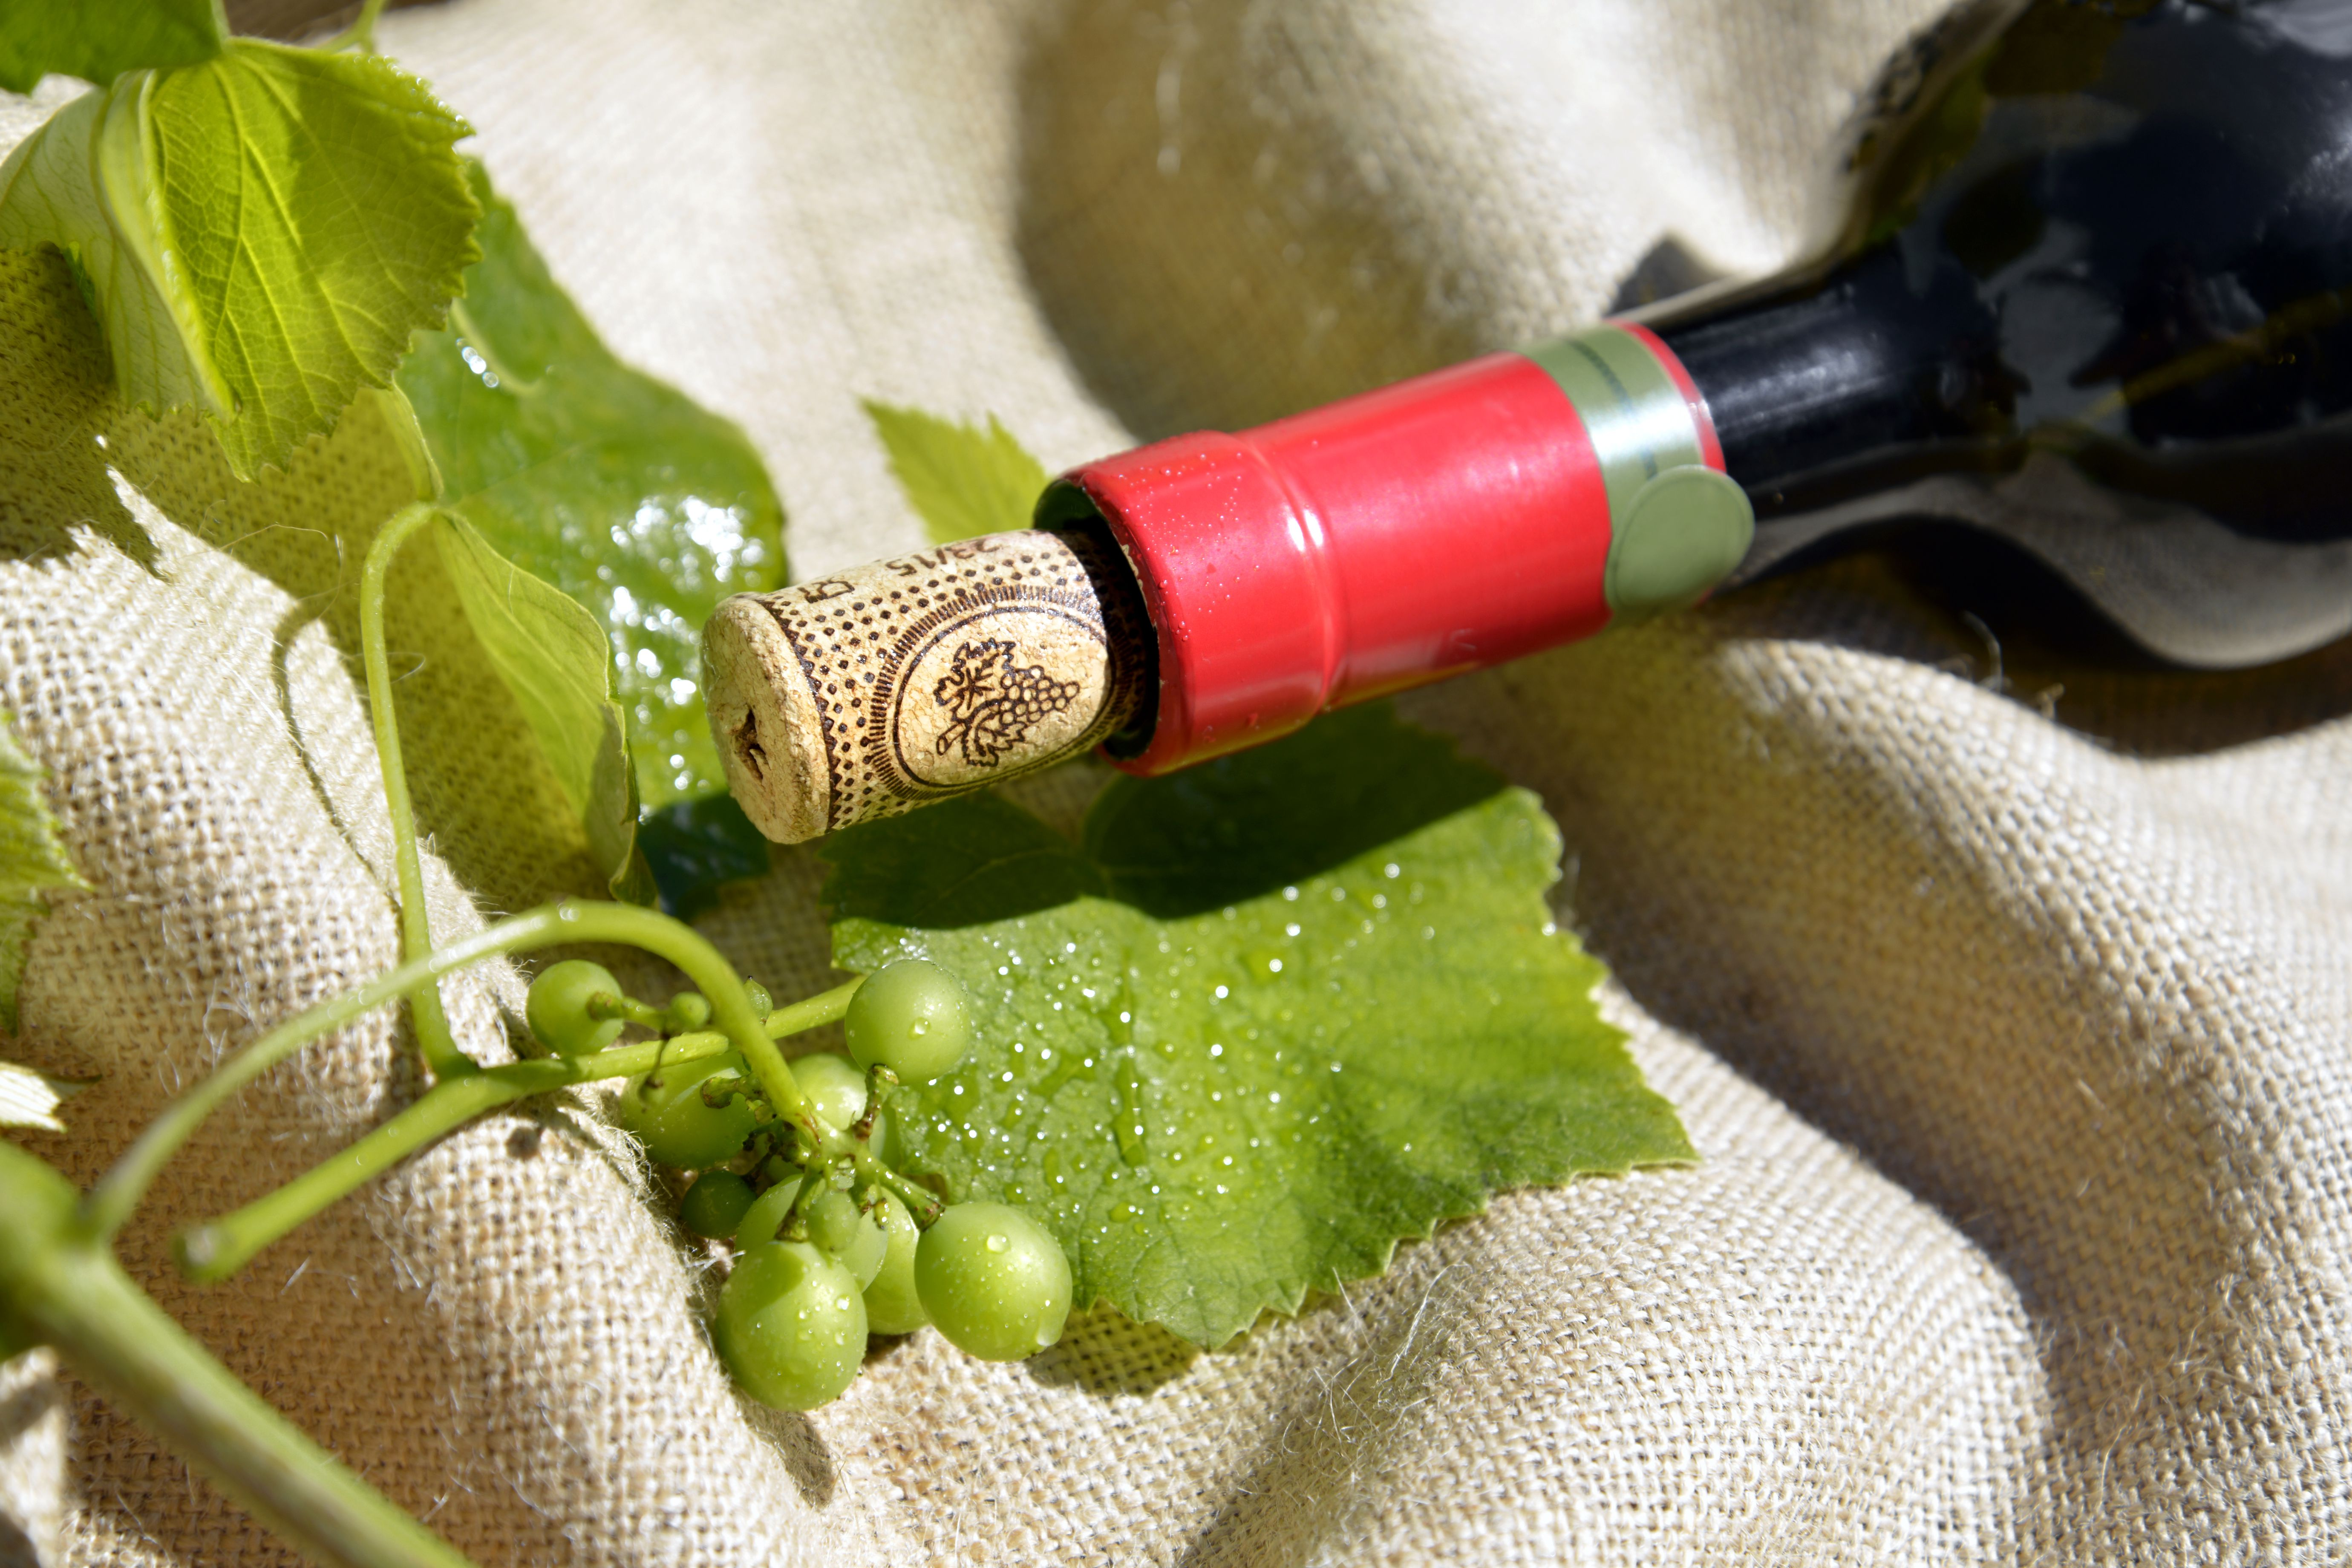 Bottle of red wine and vine leaves, Italy.